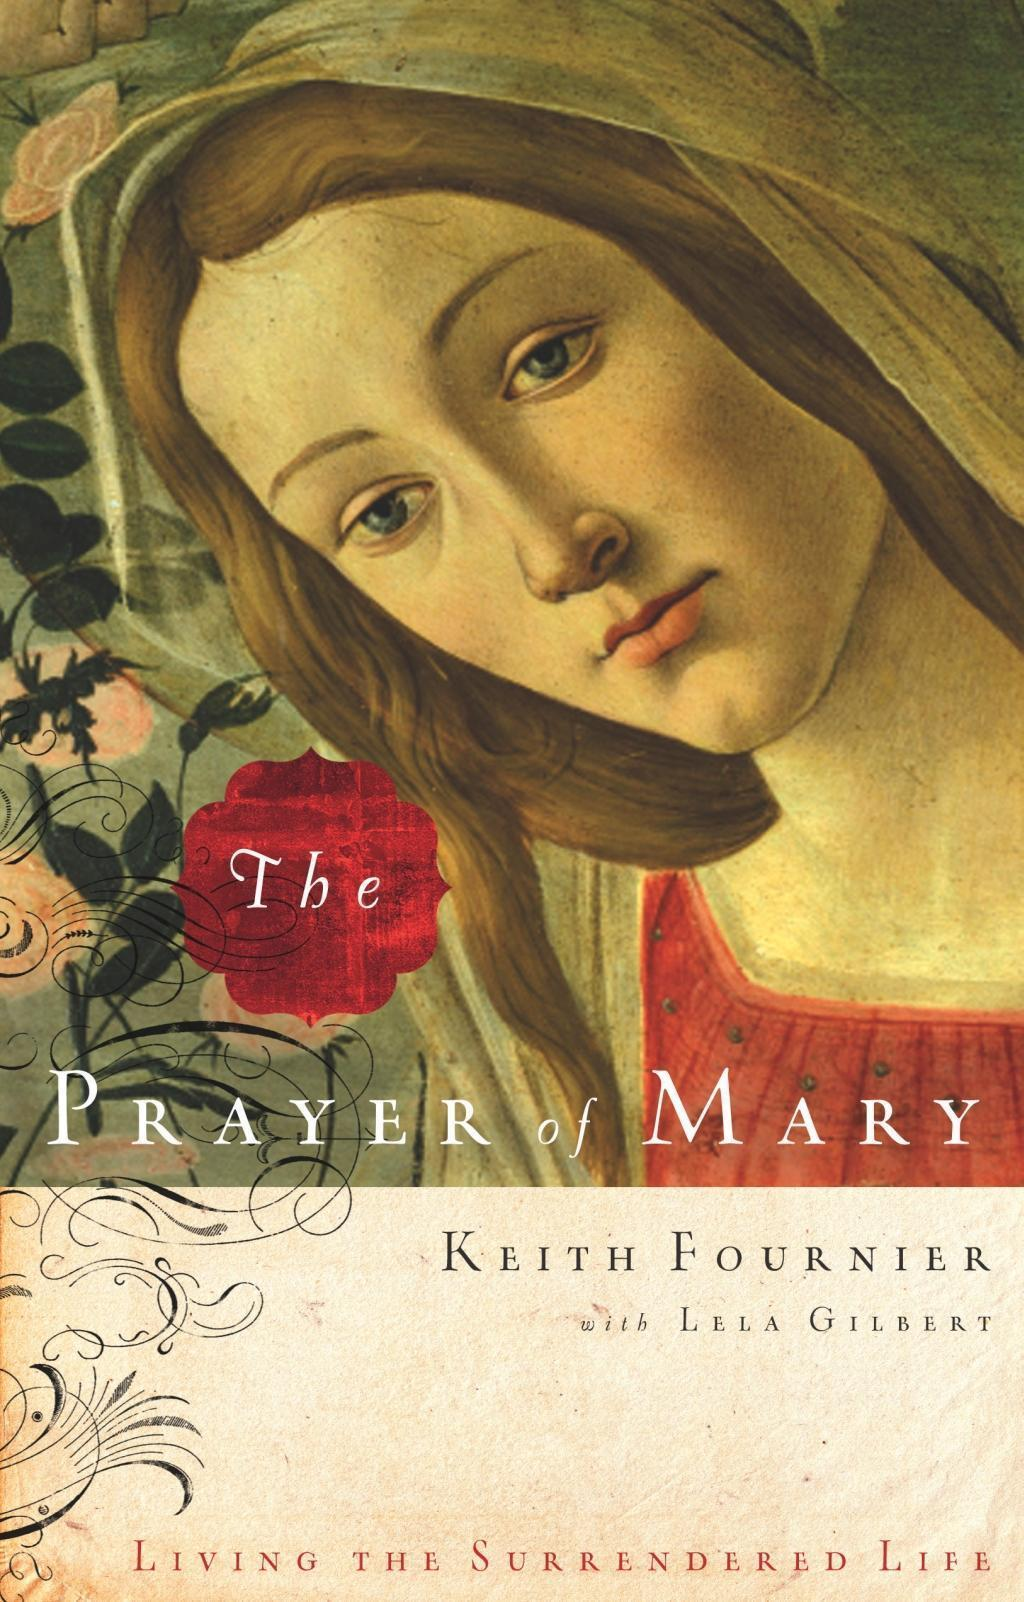 The Prayer of Mary